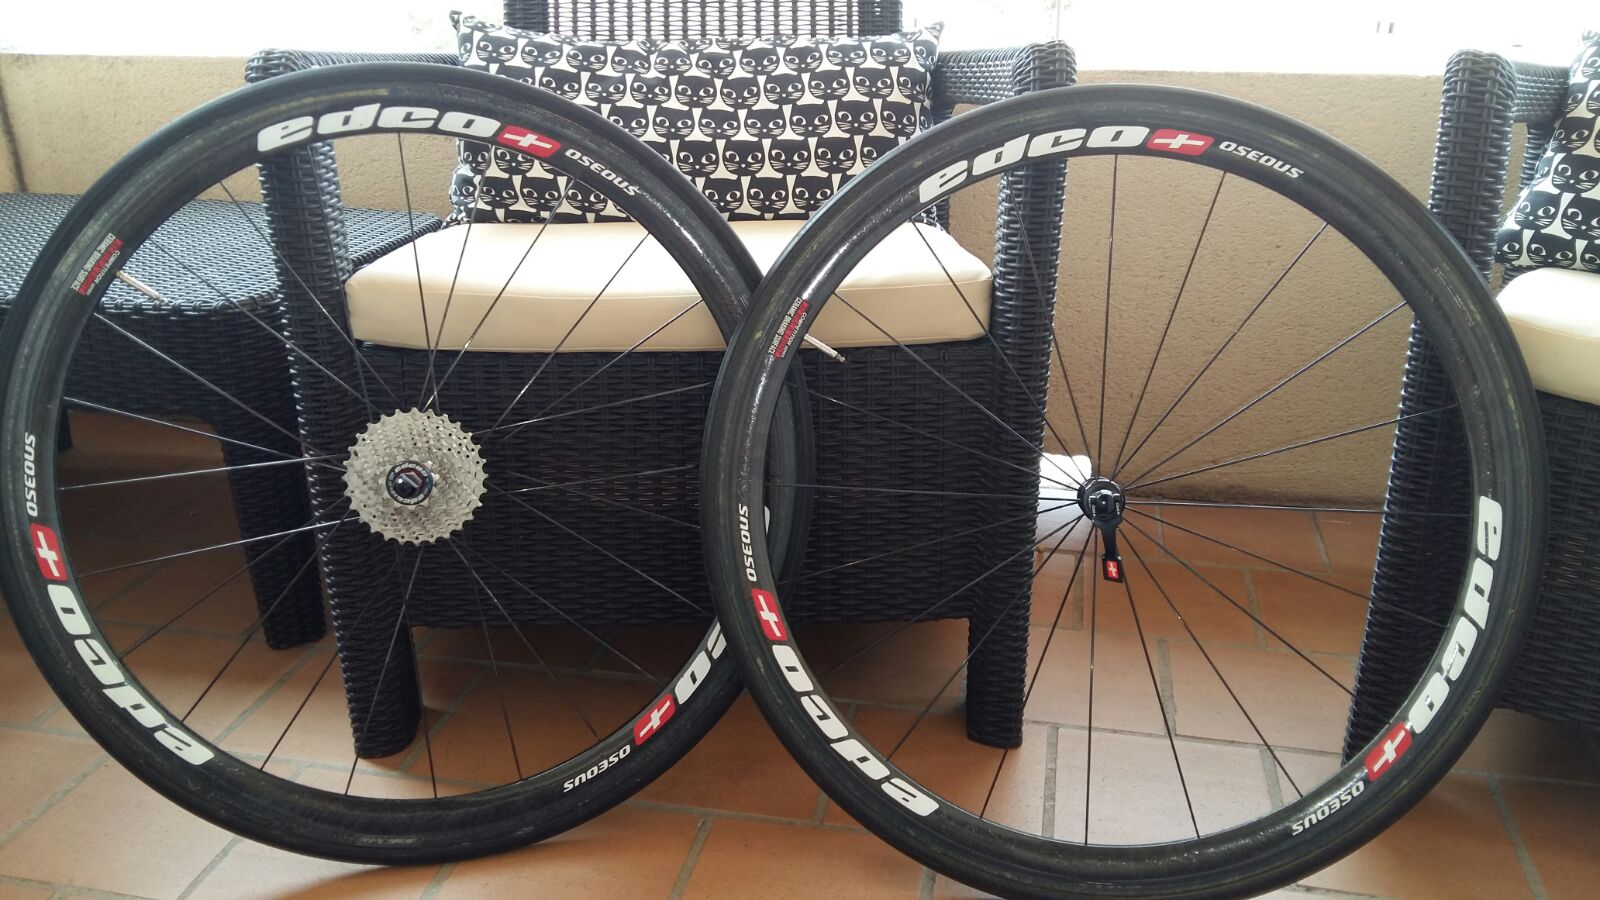 WhatsApp Image 2017-06-04 at 11.27.41